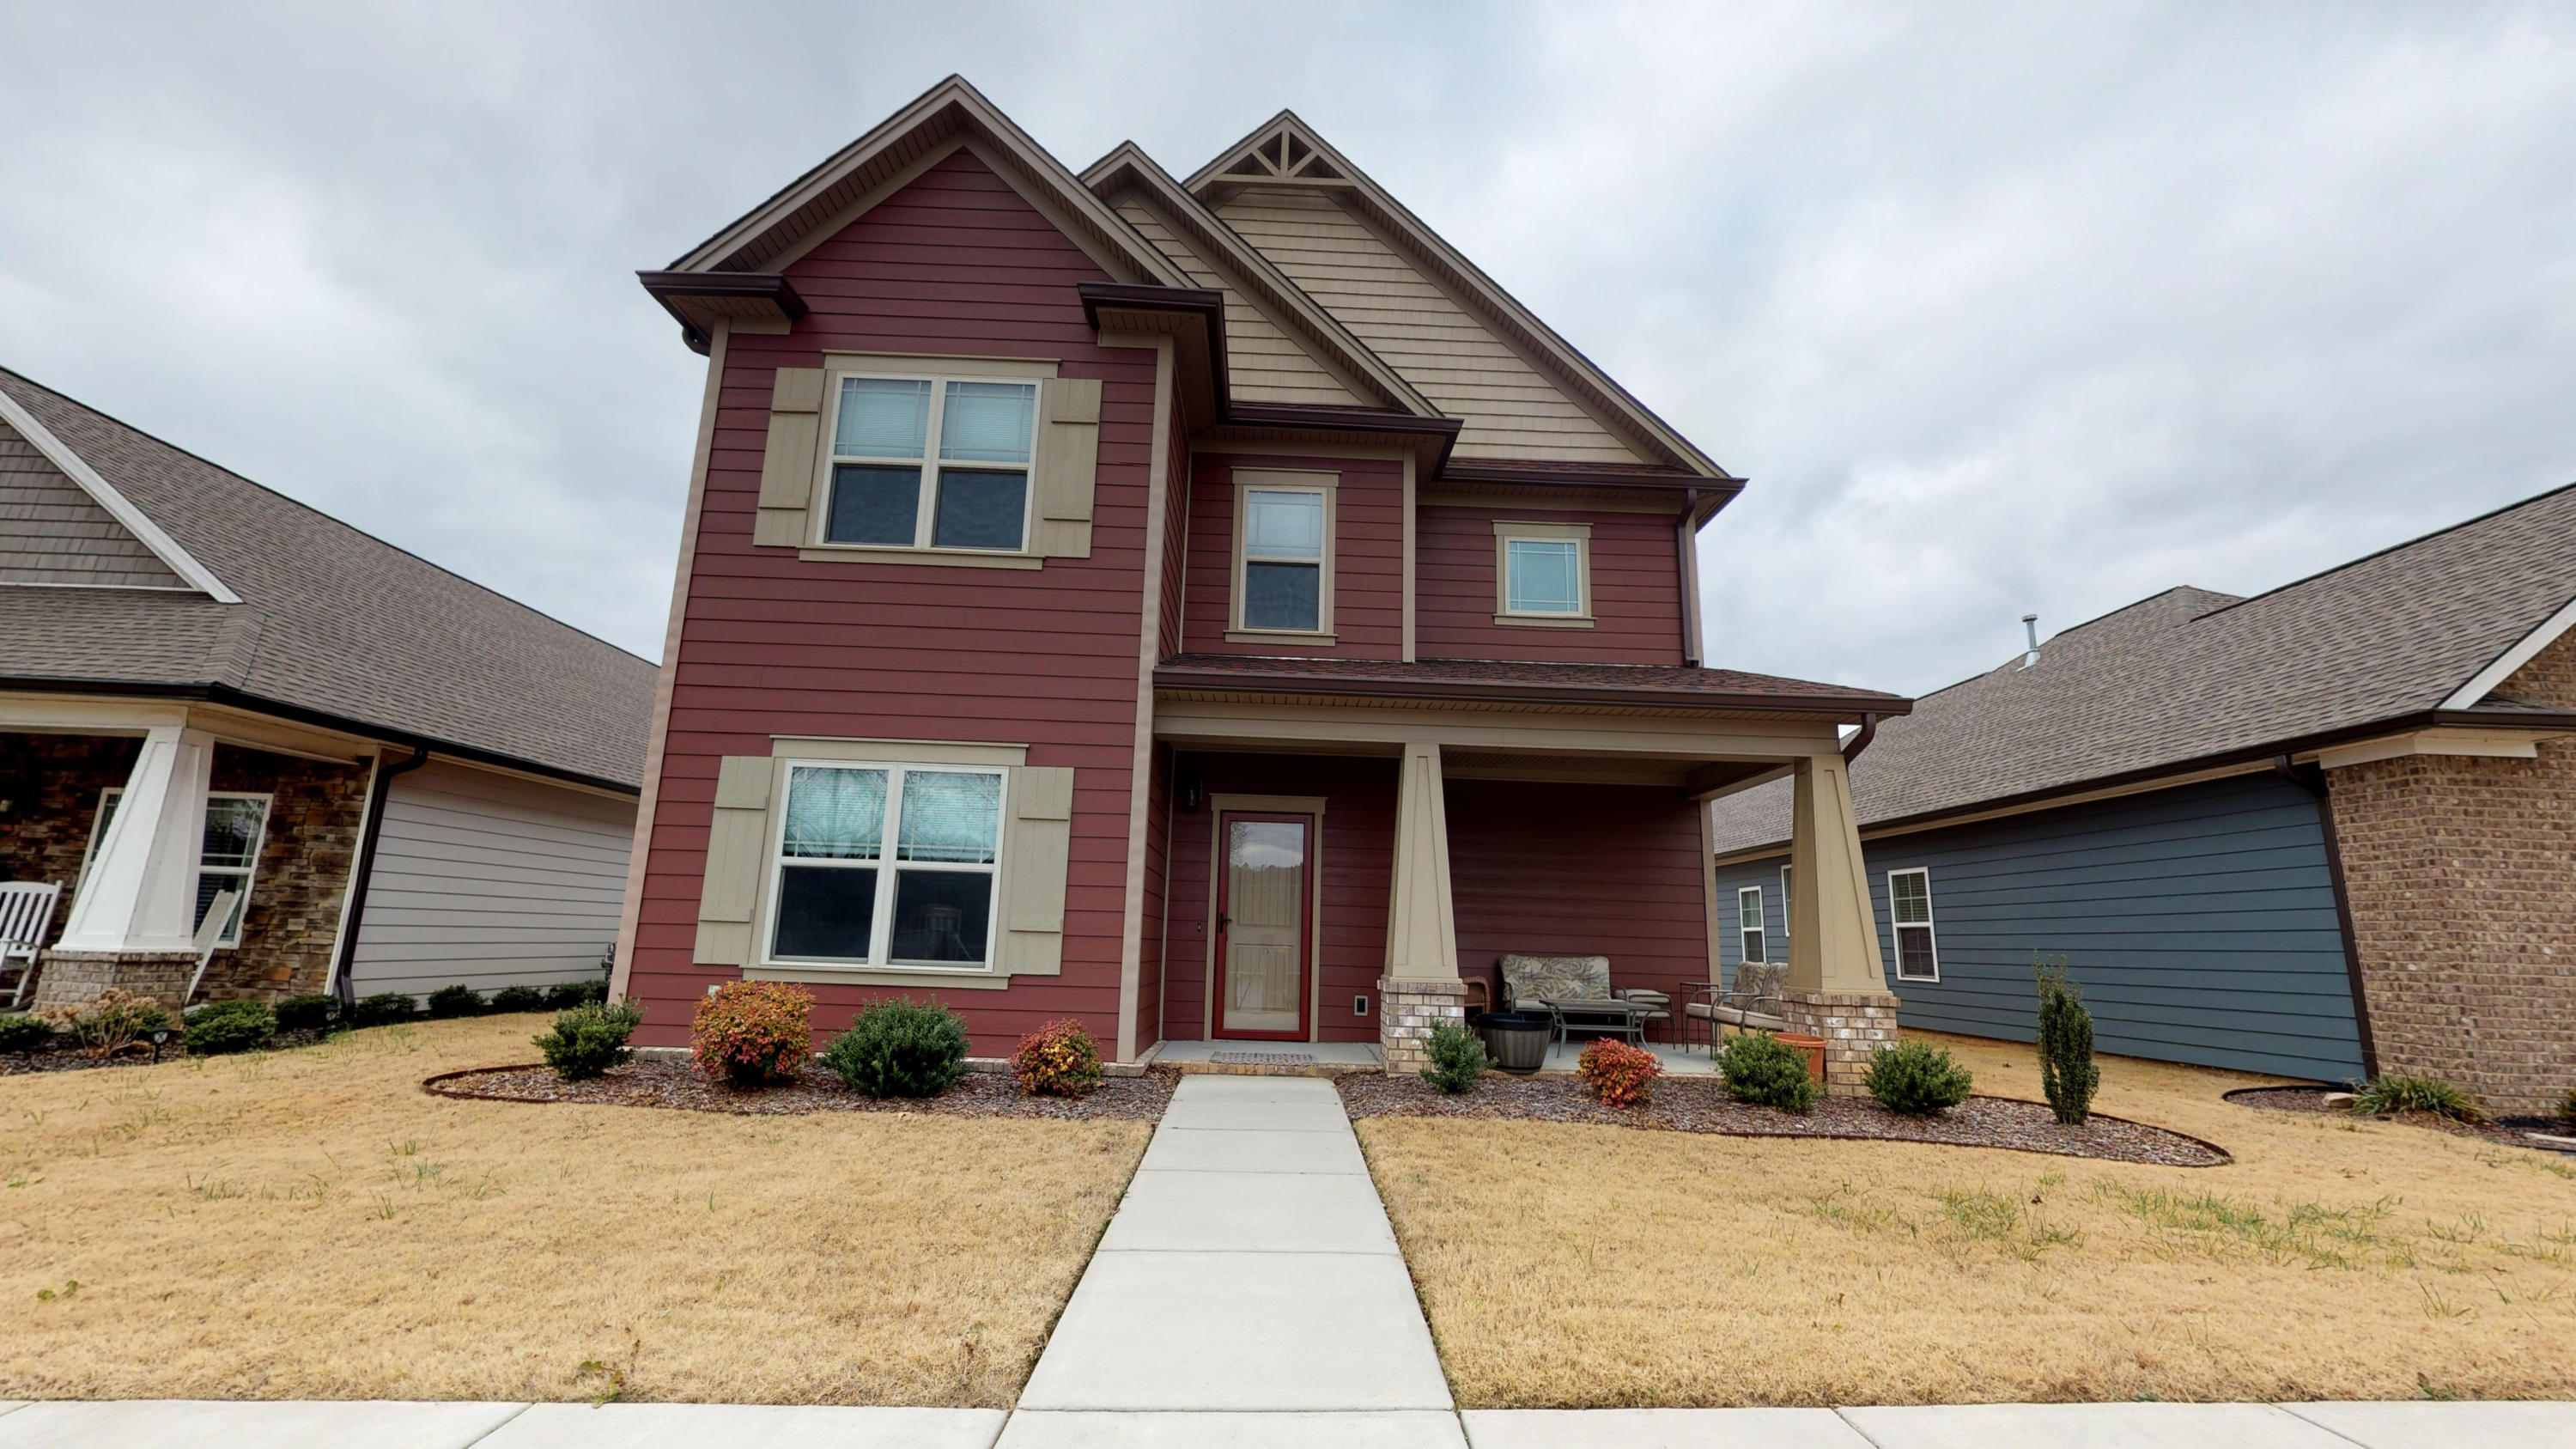 2459 Nw Inverness Dr, Cleveland, TN 37312